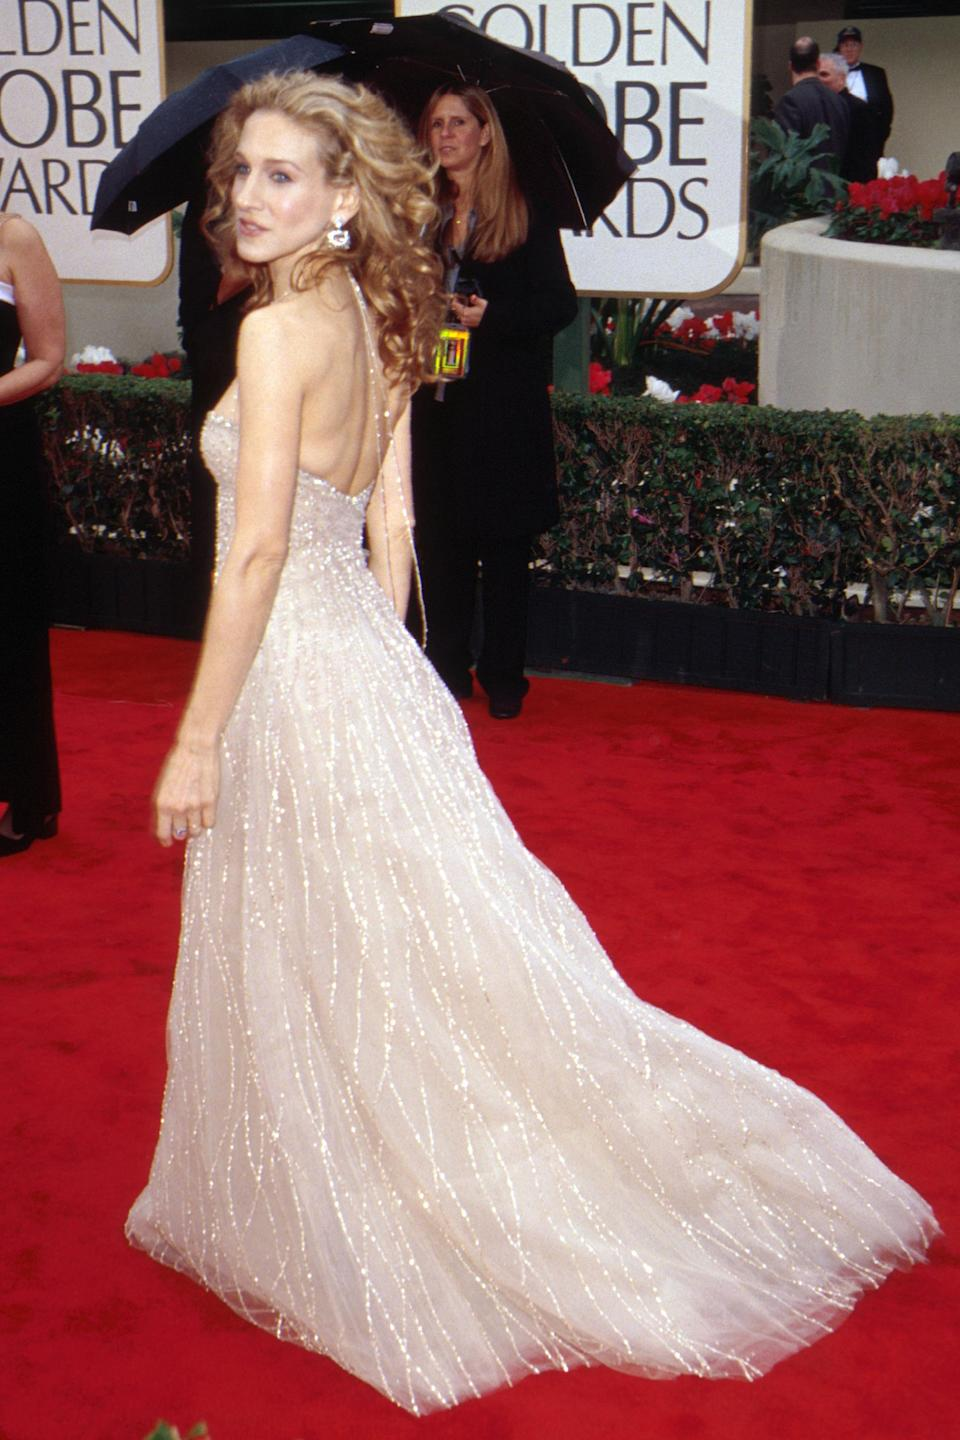 """<strong><h2>2000</h2></strong><br>At the height of <em>Sex And The City</em>'s prime, it hardly comes as a surprise that fashion icon Sarah Jessica Parker, would show up looking fabulous on the red carpet. We only wish she'd give us a hint to what shoes she's wearing underneath this Richard Tyler tulle gown.<br><br><em>Sarah Jessica Parker in Richard Tyler.</em><span class=""""copyright"""">Photo: Frank Micelotta/Getty Images.</span>"""